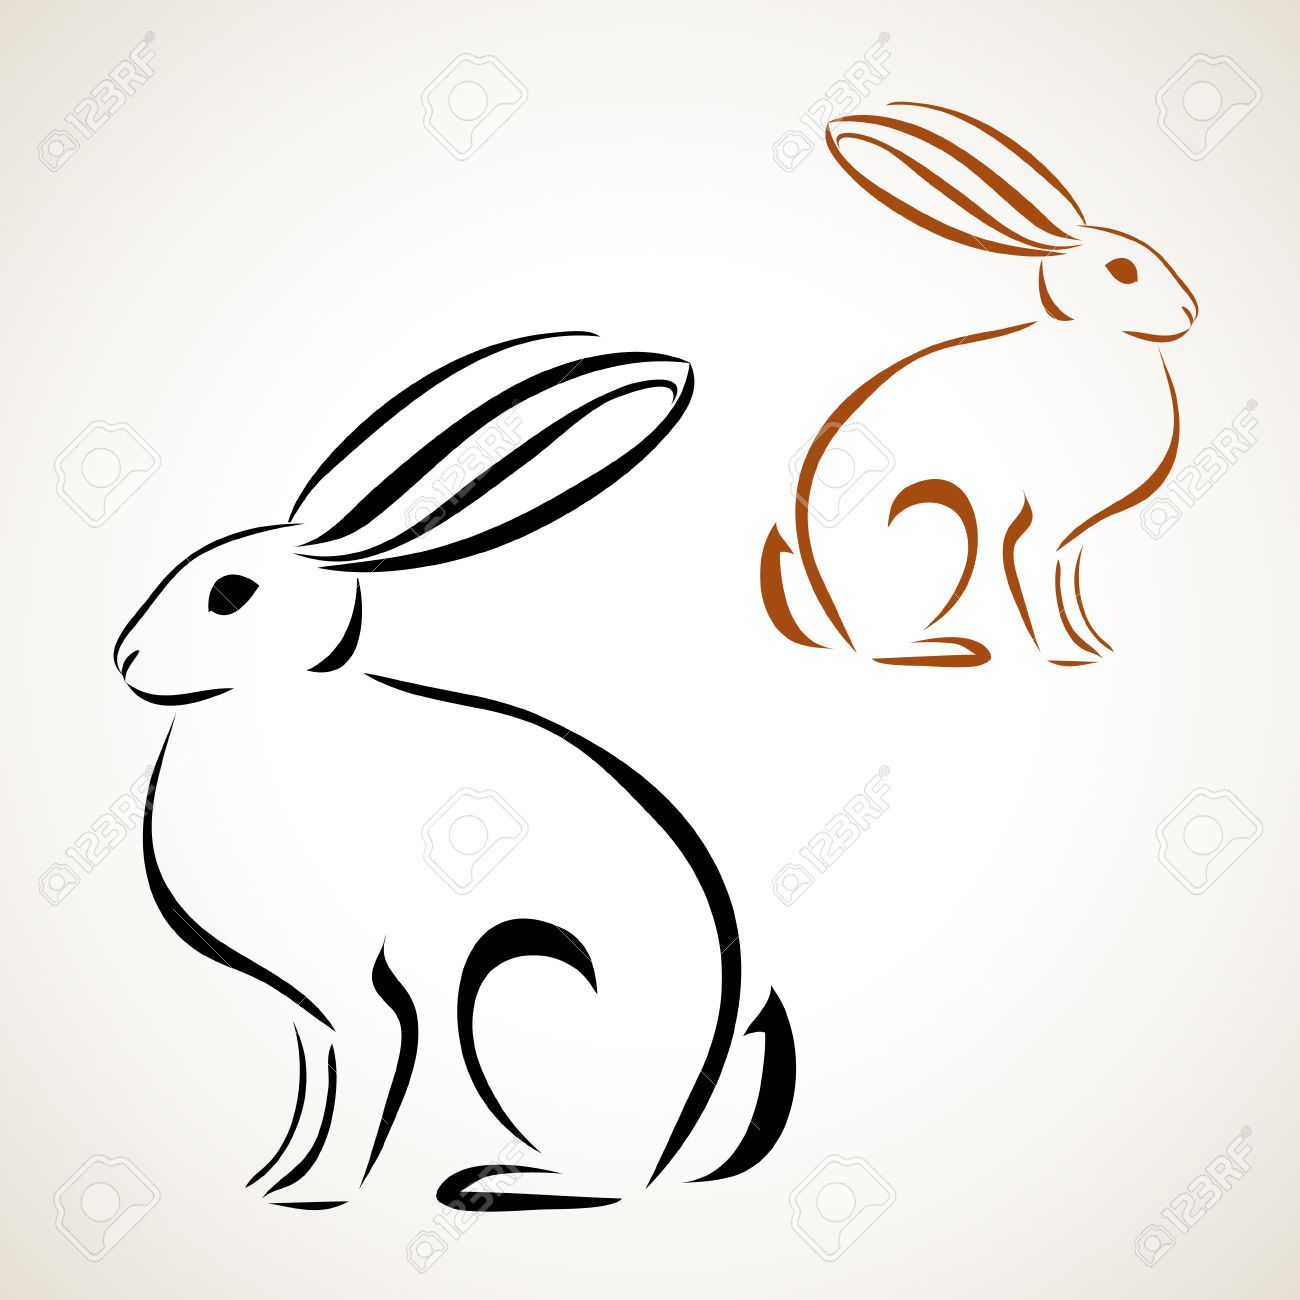 medium resolution of easter card with rabbit outline royalty free cliparts vectors